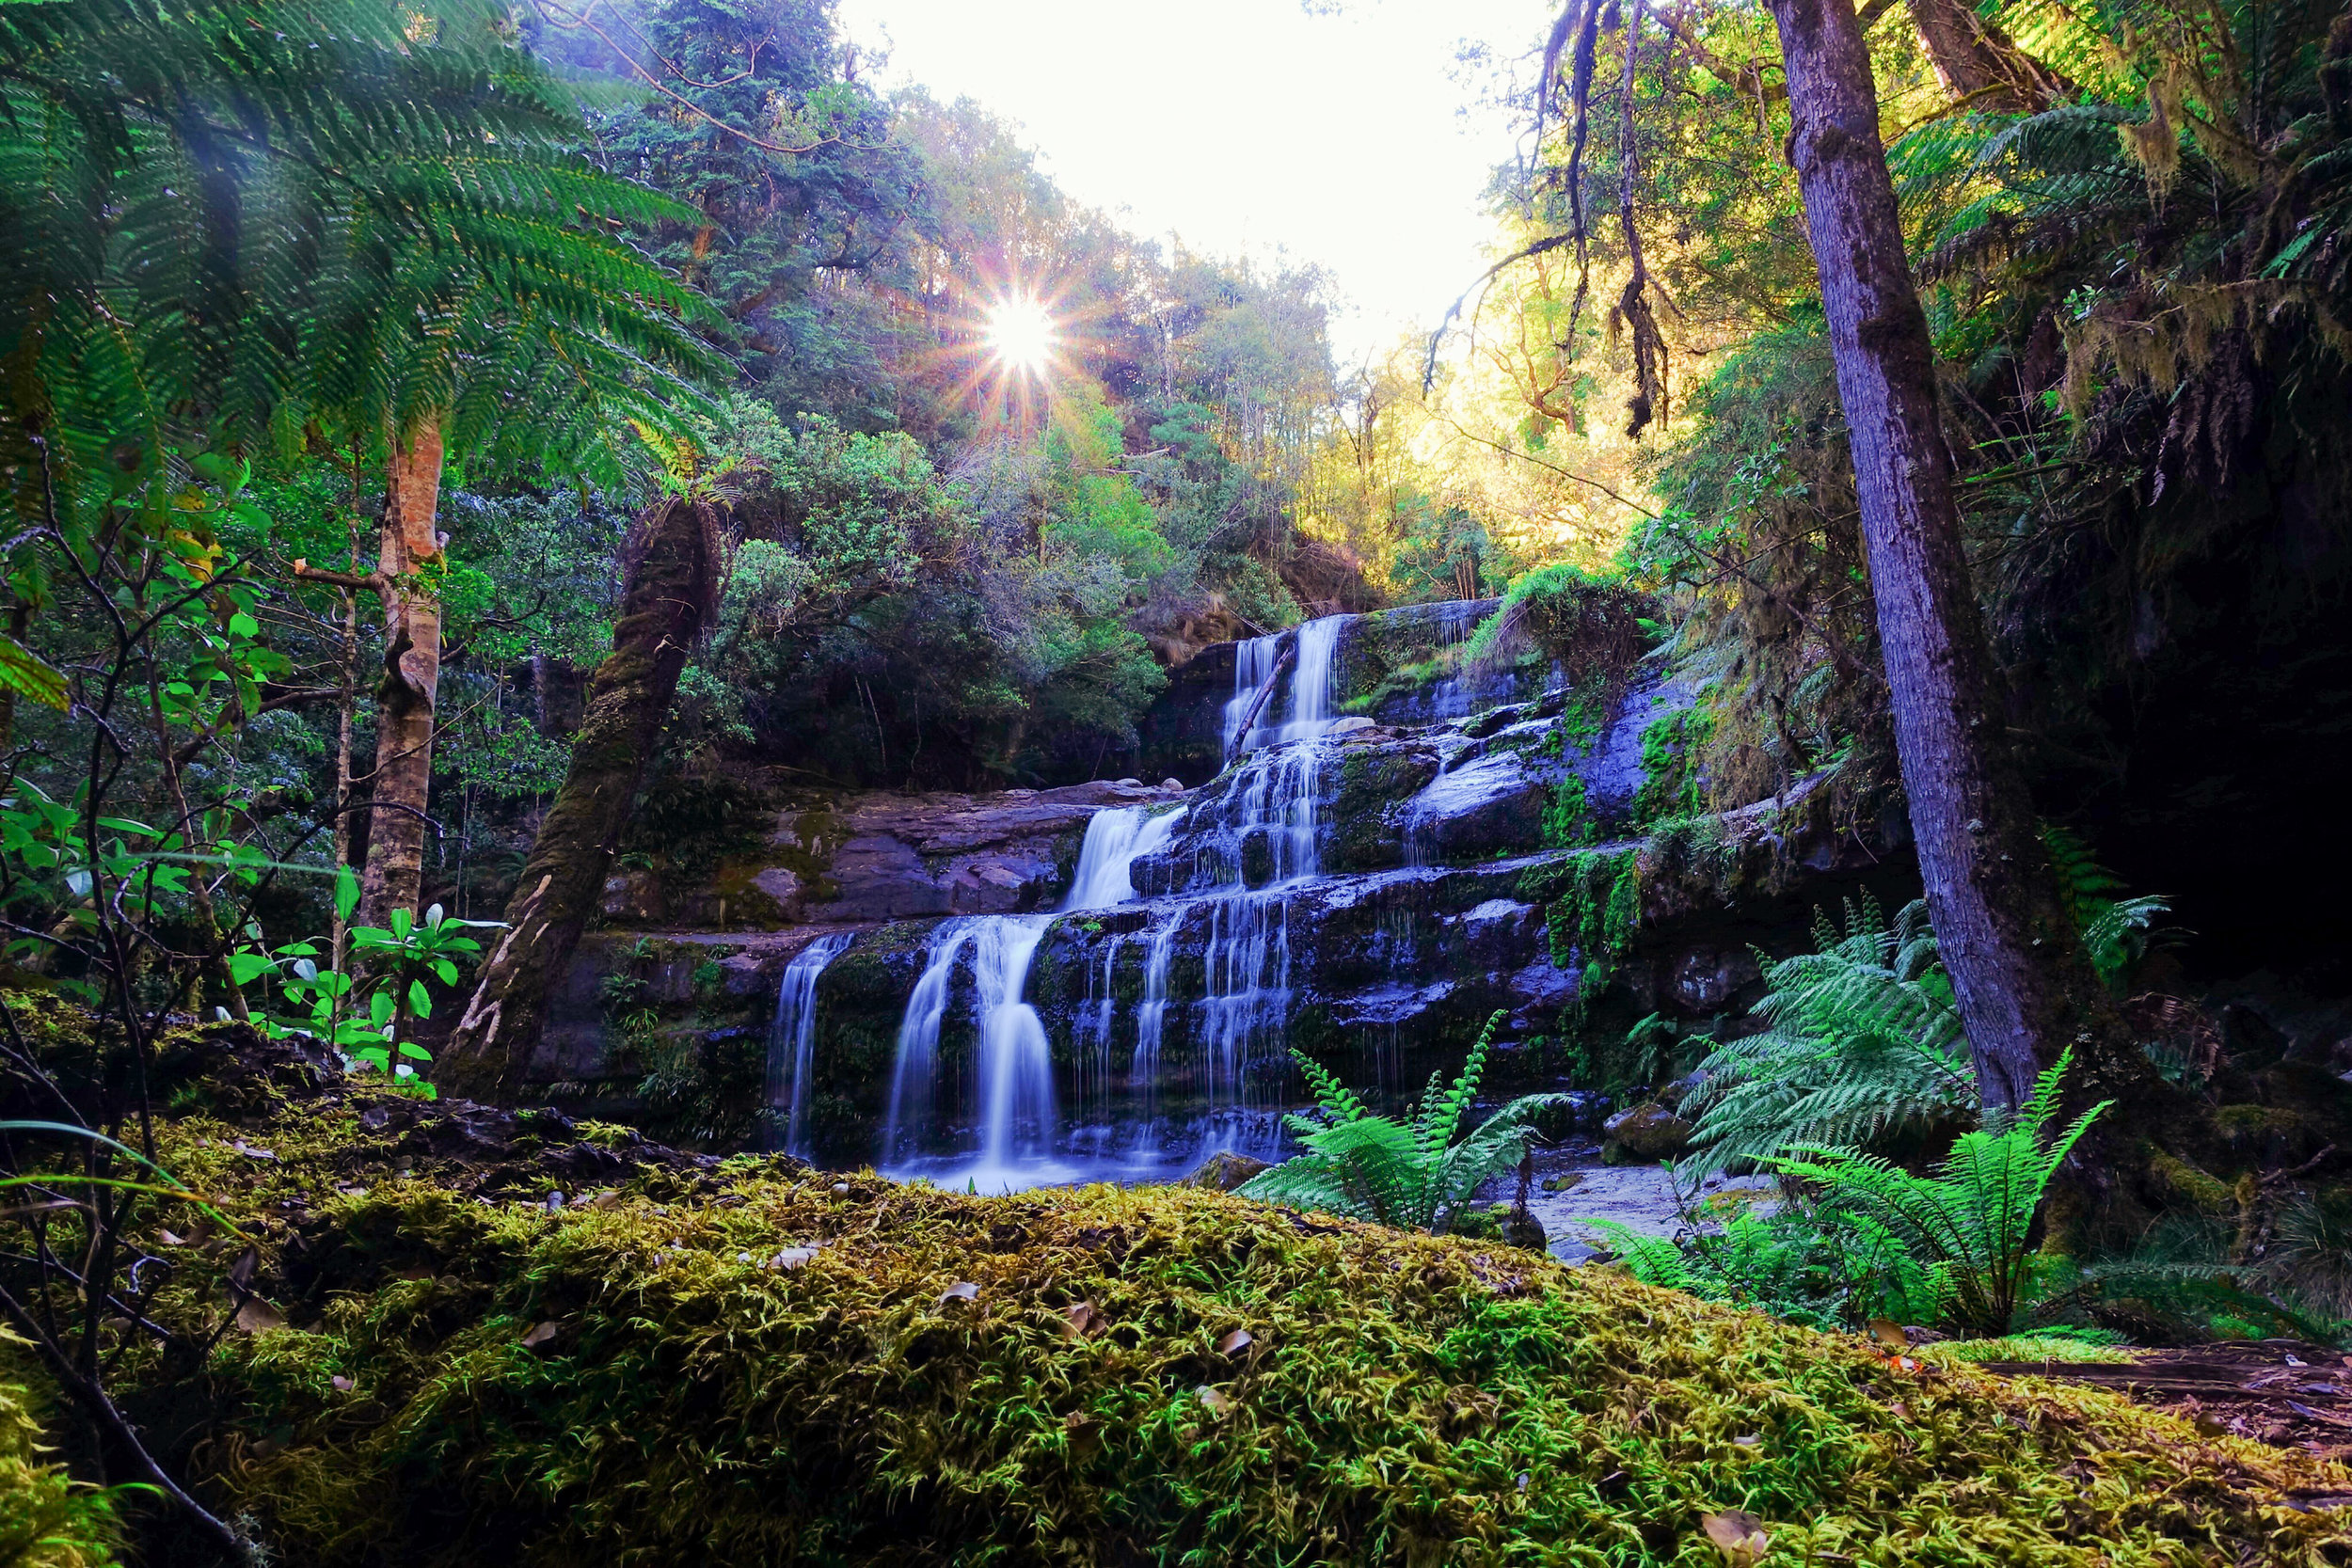 2.)Liffey Falls - Located 1 hour drive from Launceston, Liffey Falls is well worth the (dirt road)detour for the stunning scenery and tranquility.Allow time here to enjoy a a picnic lunch.